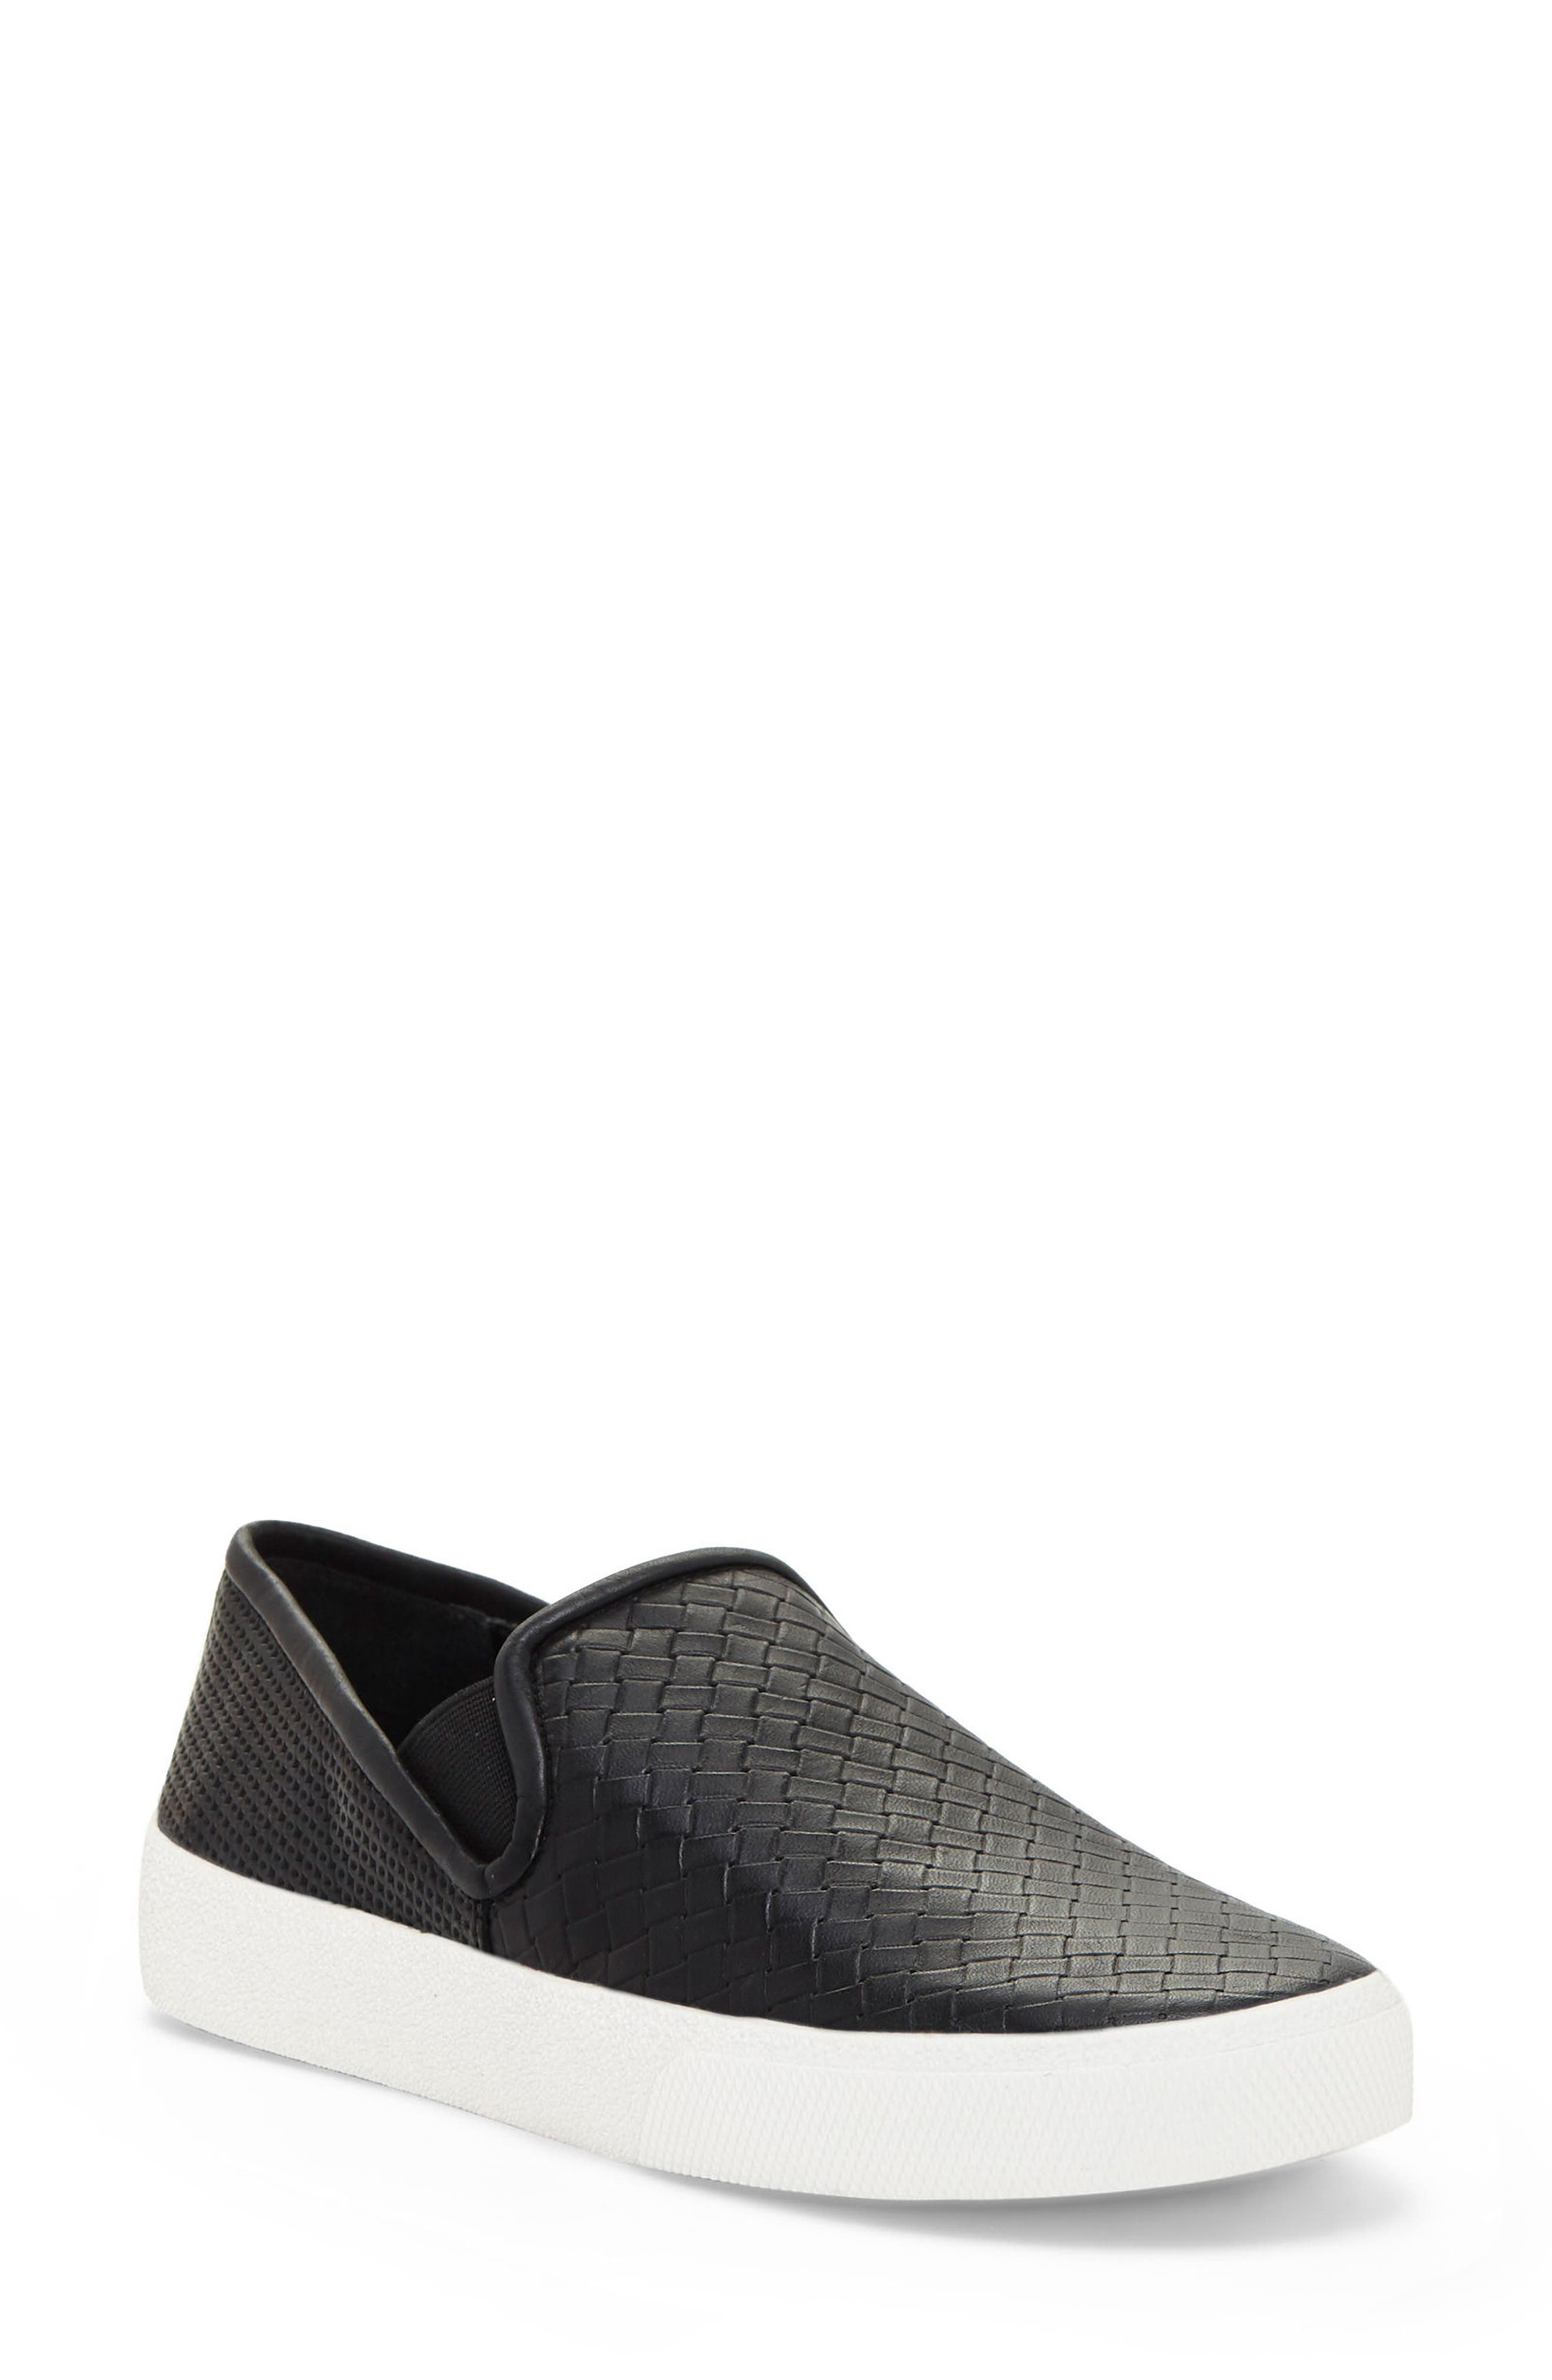 Cariana Slip-On Sneaker,                         Main,                         color,